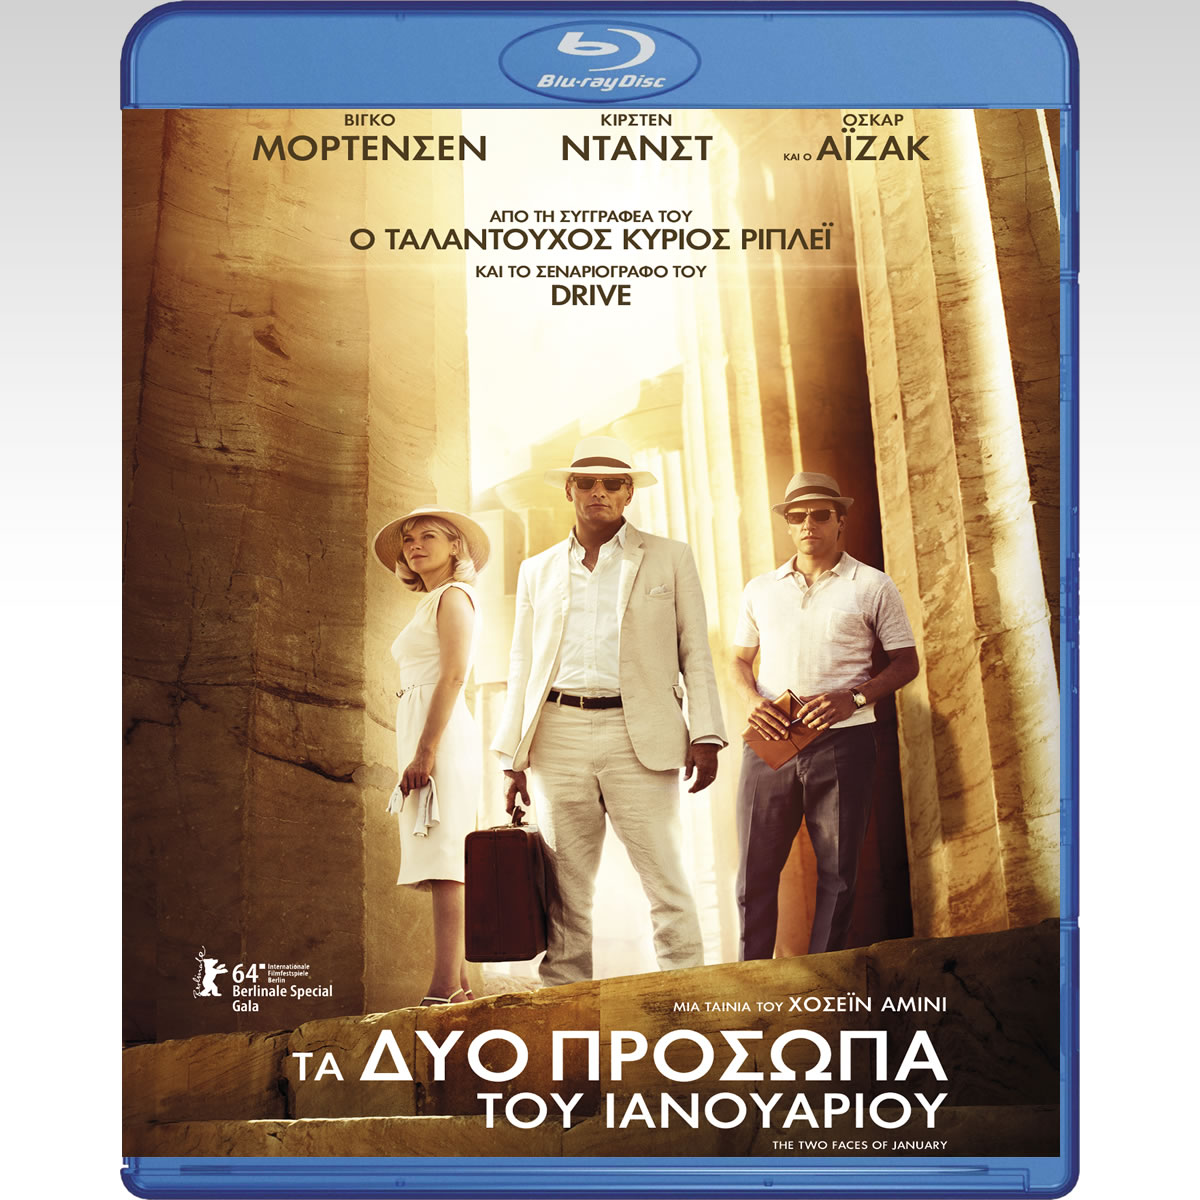 THE TWO FACES OF JANUARY - ΤΑ ΔΥΟ ΠΡΟΣΩΠΑ ΤΟΥ ΙΑΝΟΥΑΡΙΟΥ (BLU-RAY)